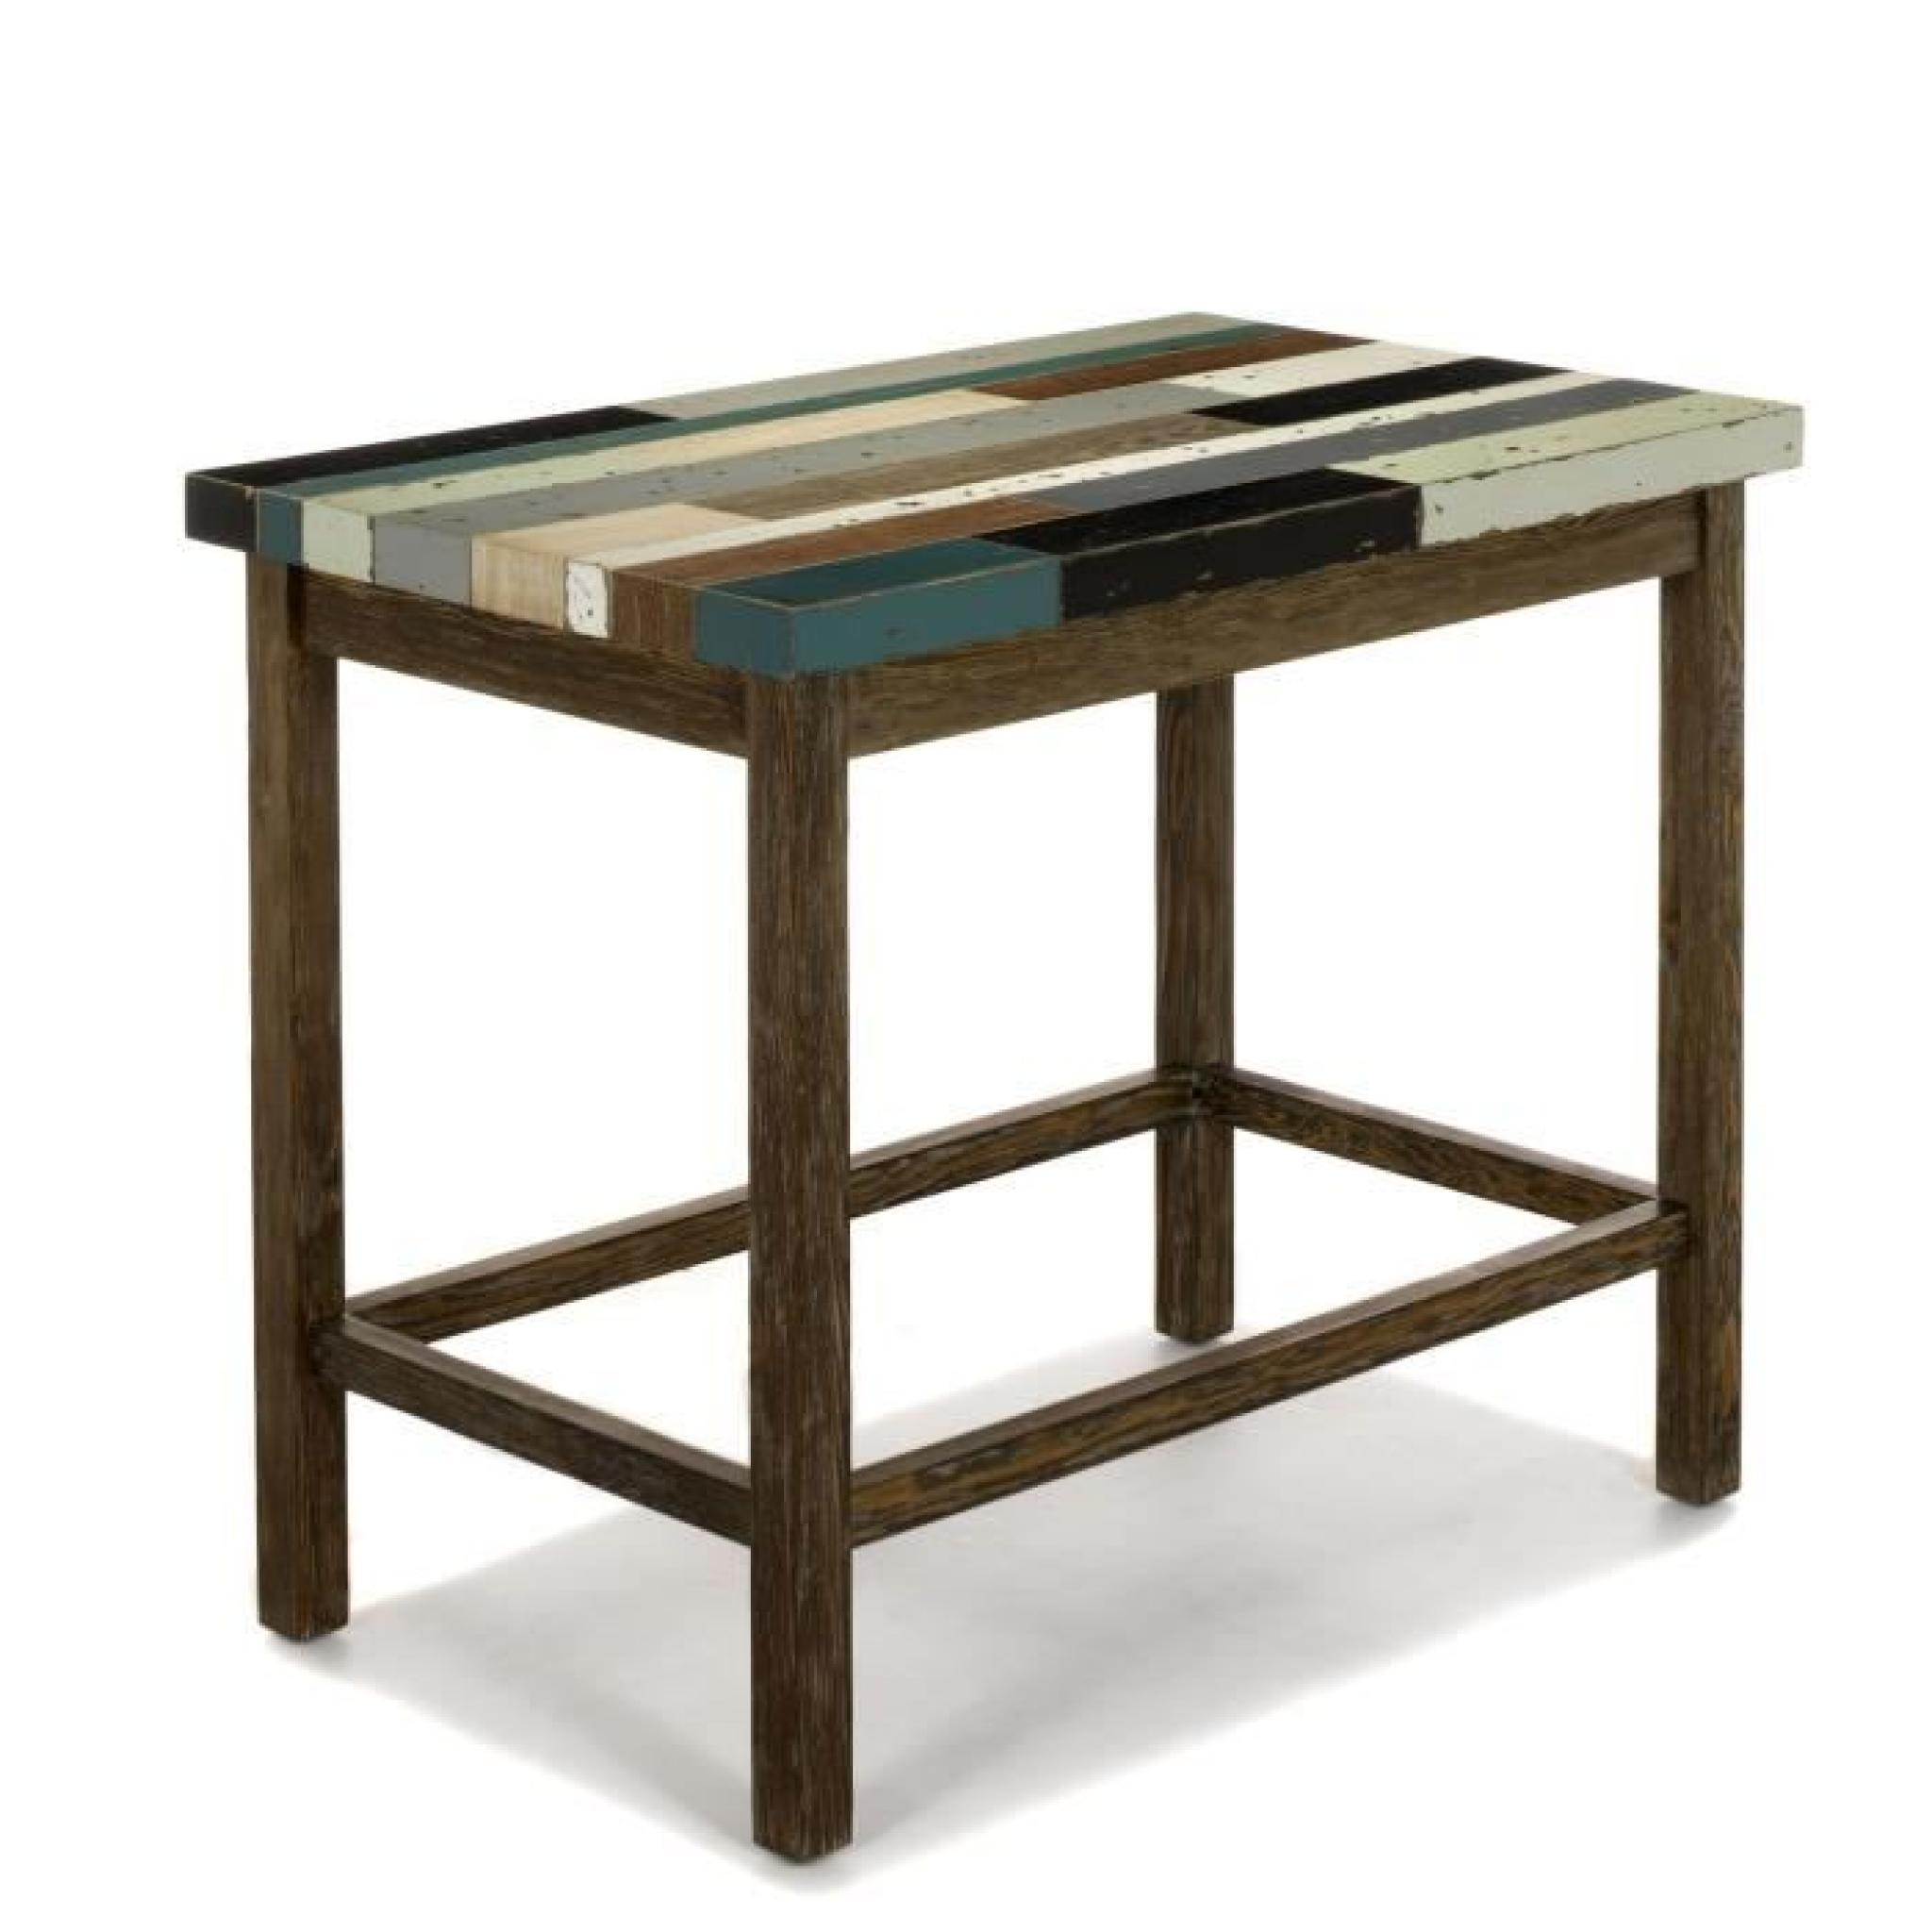 Manaka table haute bar rectangulaire achat vente table - Table rectangulaire pas cher ...